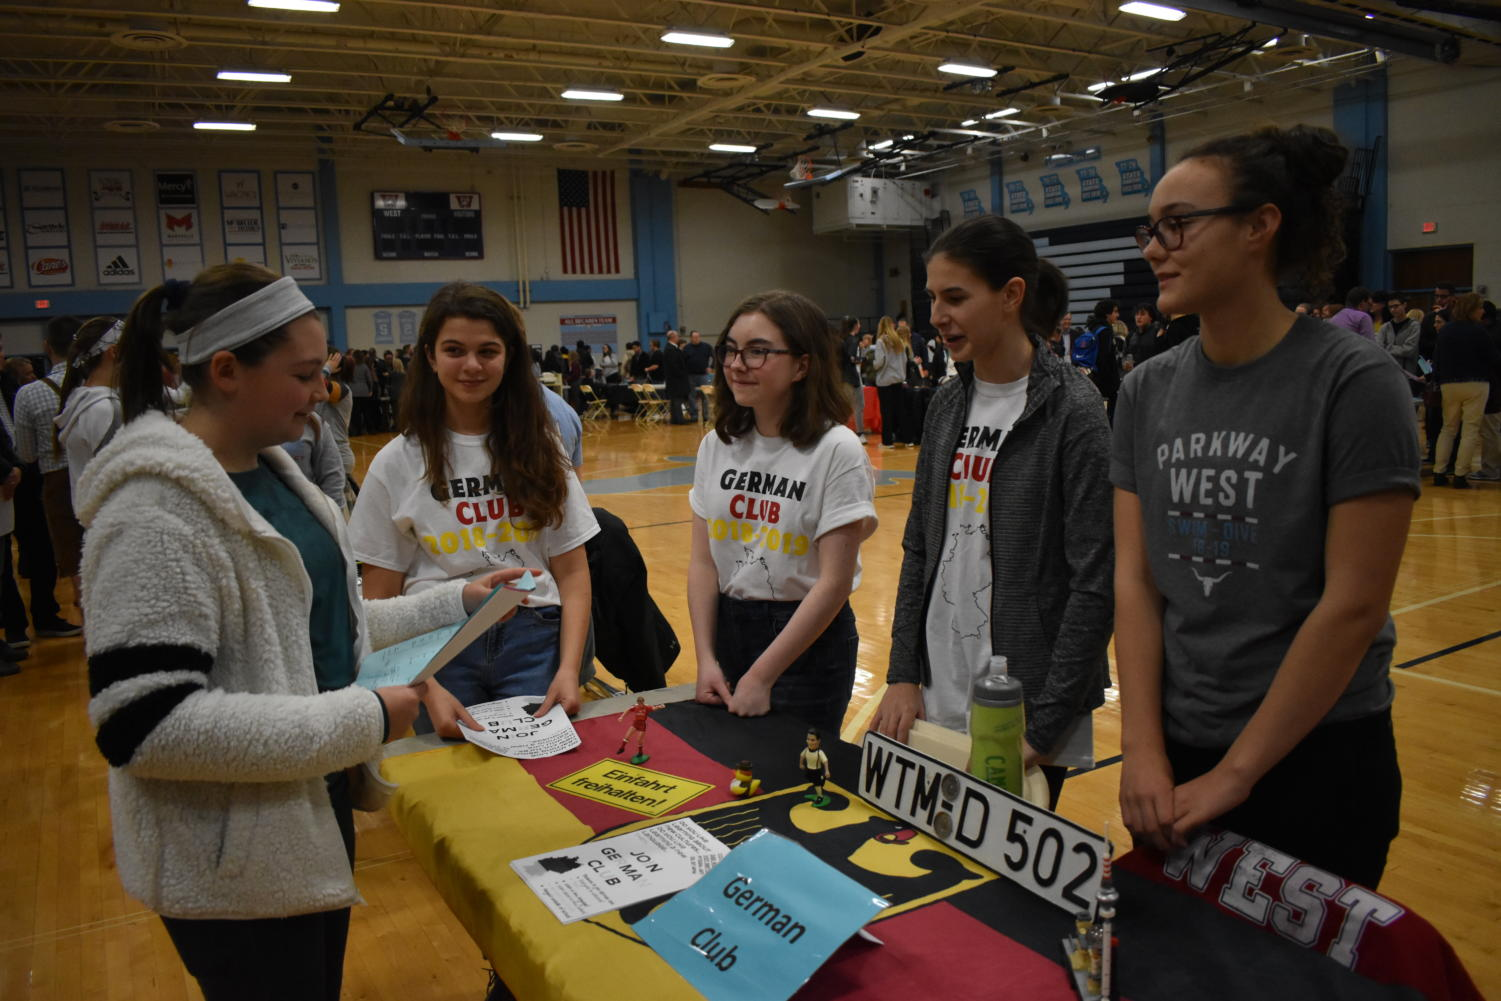 """Introducing eighth graders to the highlights of German Club, freshman Anna Csiki-Fejer stands with sophomores Claire Reifschneider and Eva Phillips at the German Club table during Curriculum Night Jan. 15. """"We printed out flyers, passed them out and told the students involved in any foreign language about our club because we are open and welcoming to all students, in German or not,"""" Csiki-Fejer said."""